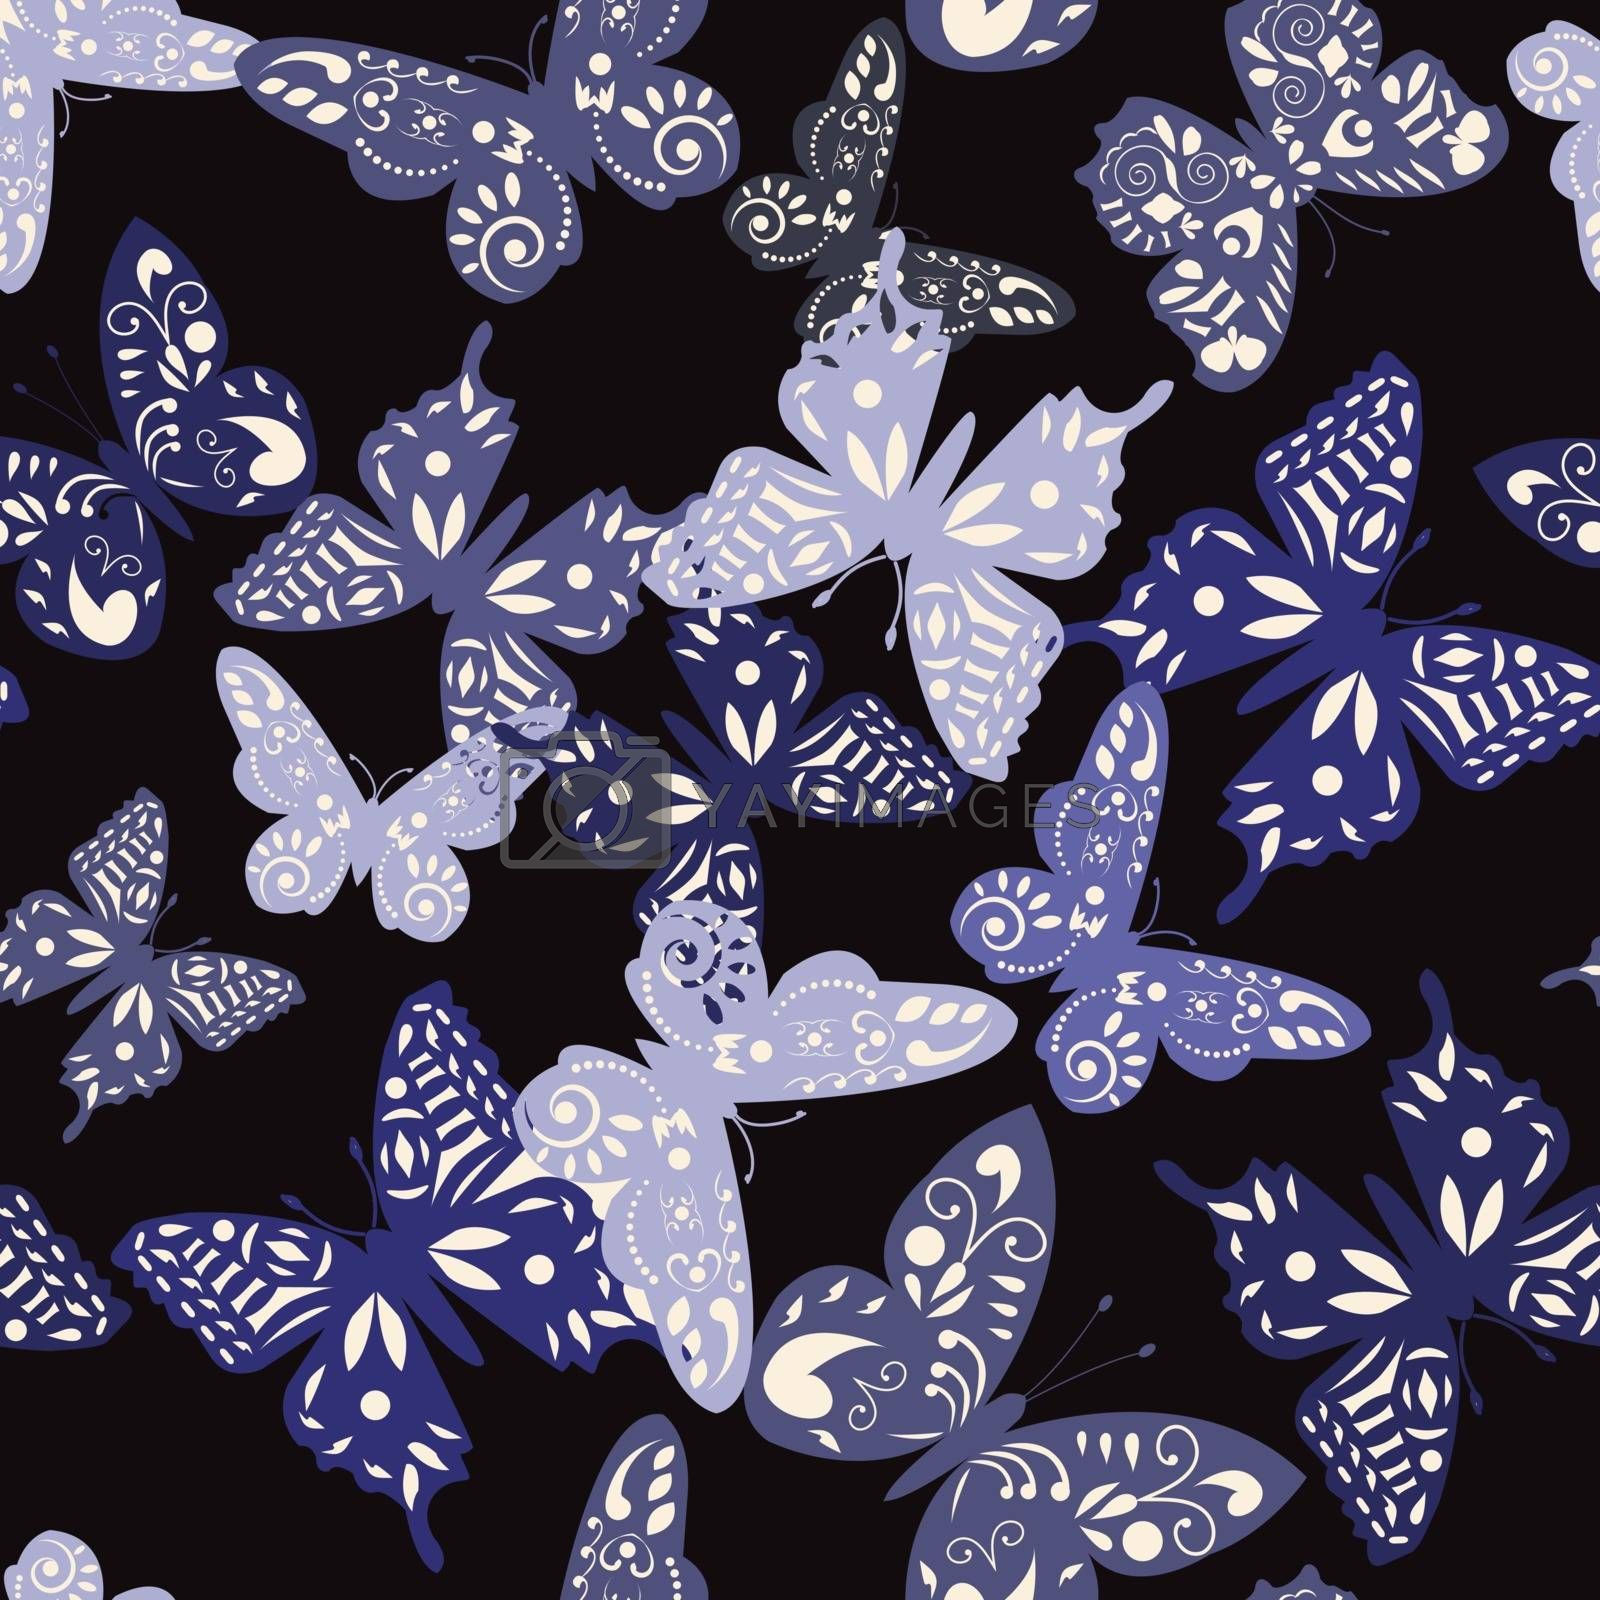 vector  Decorative pattern of collection cute butterflies  - Illustration